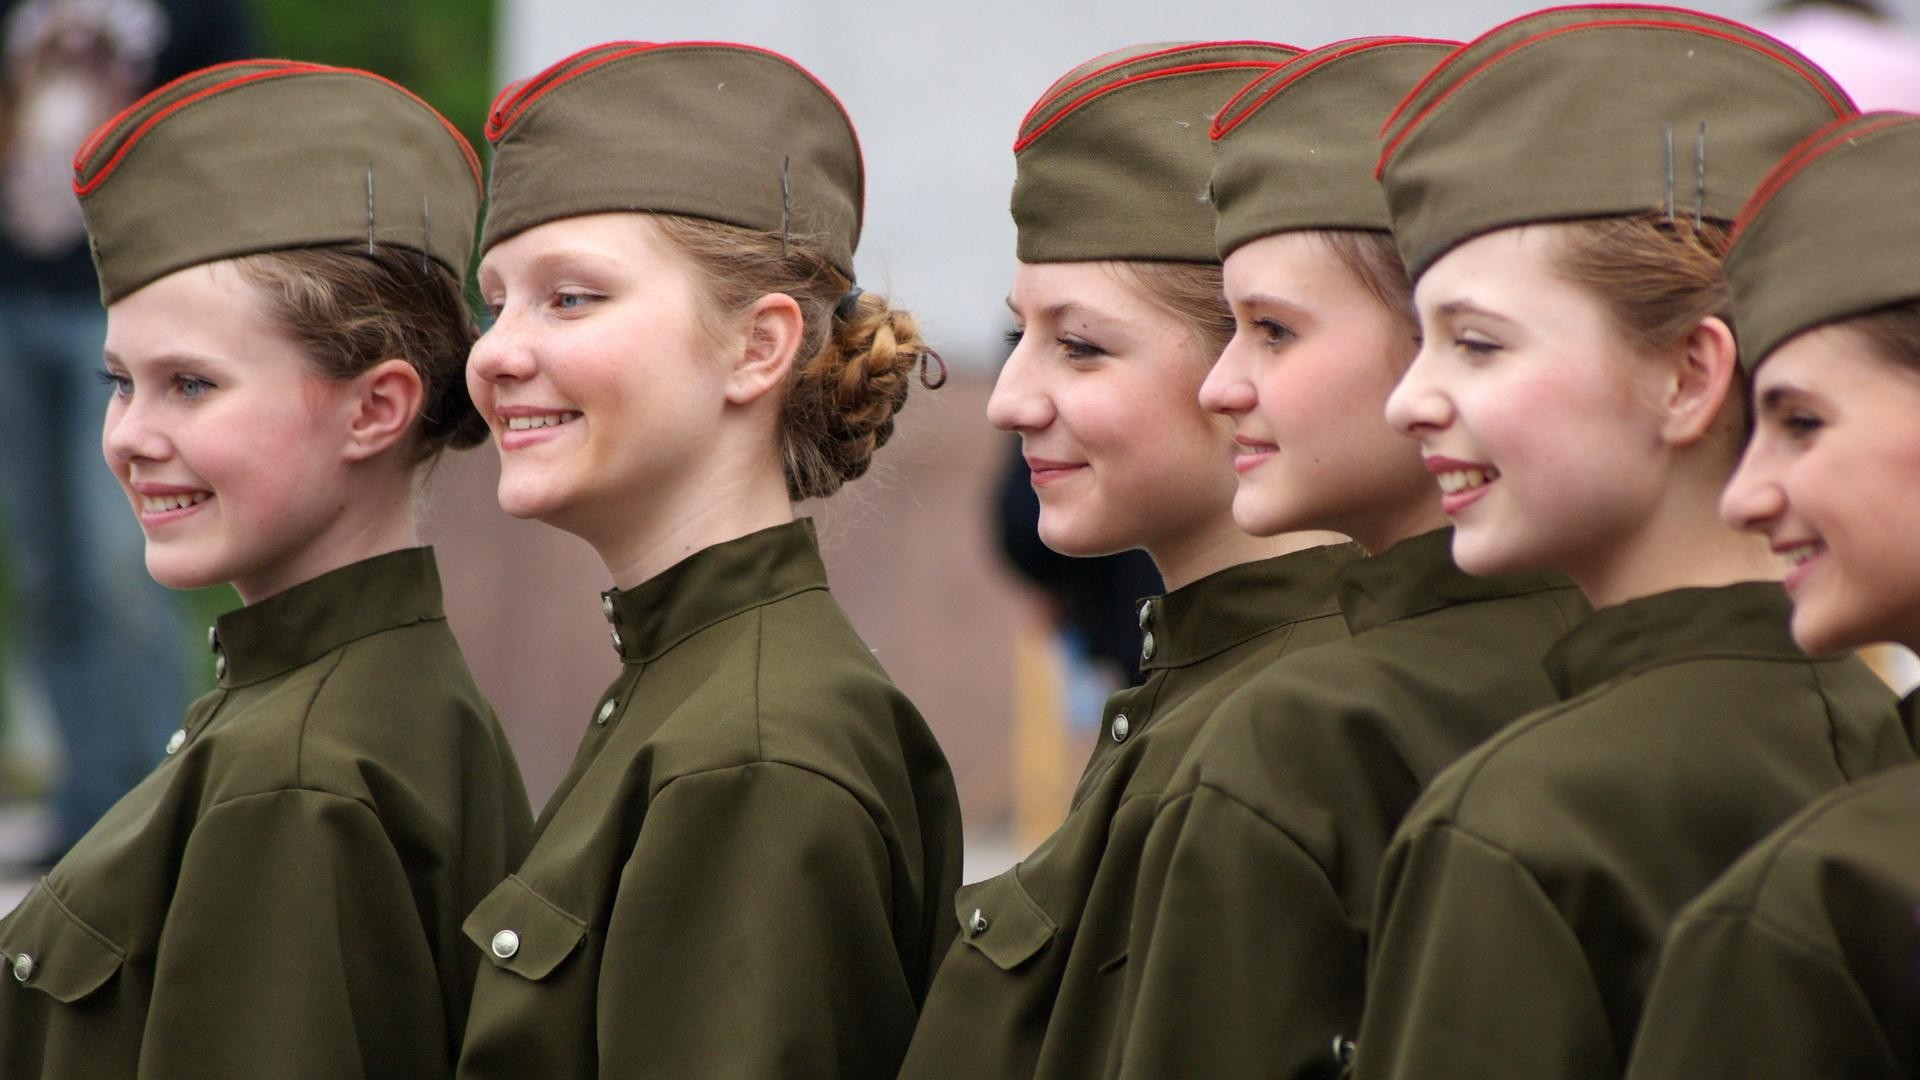 Options Russian Woman Soldier 35